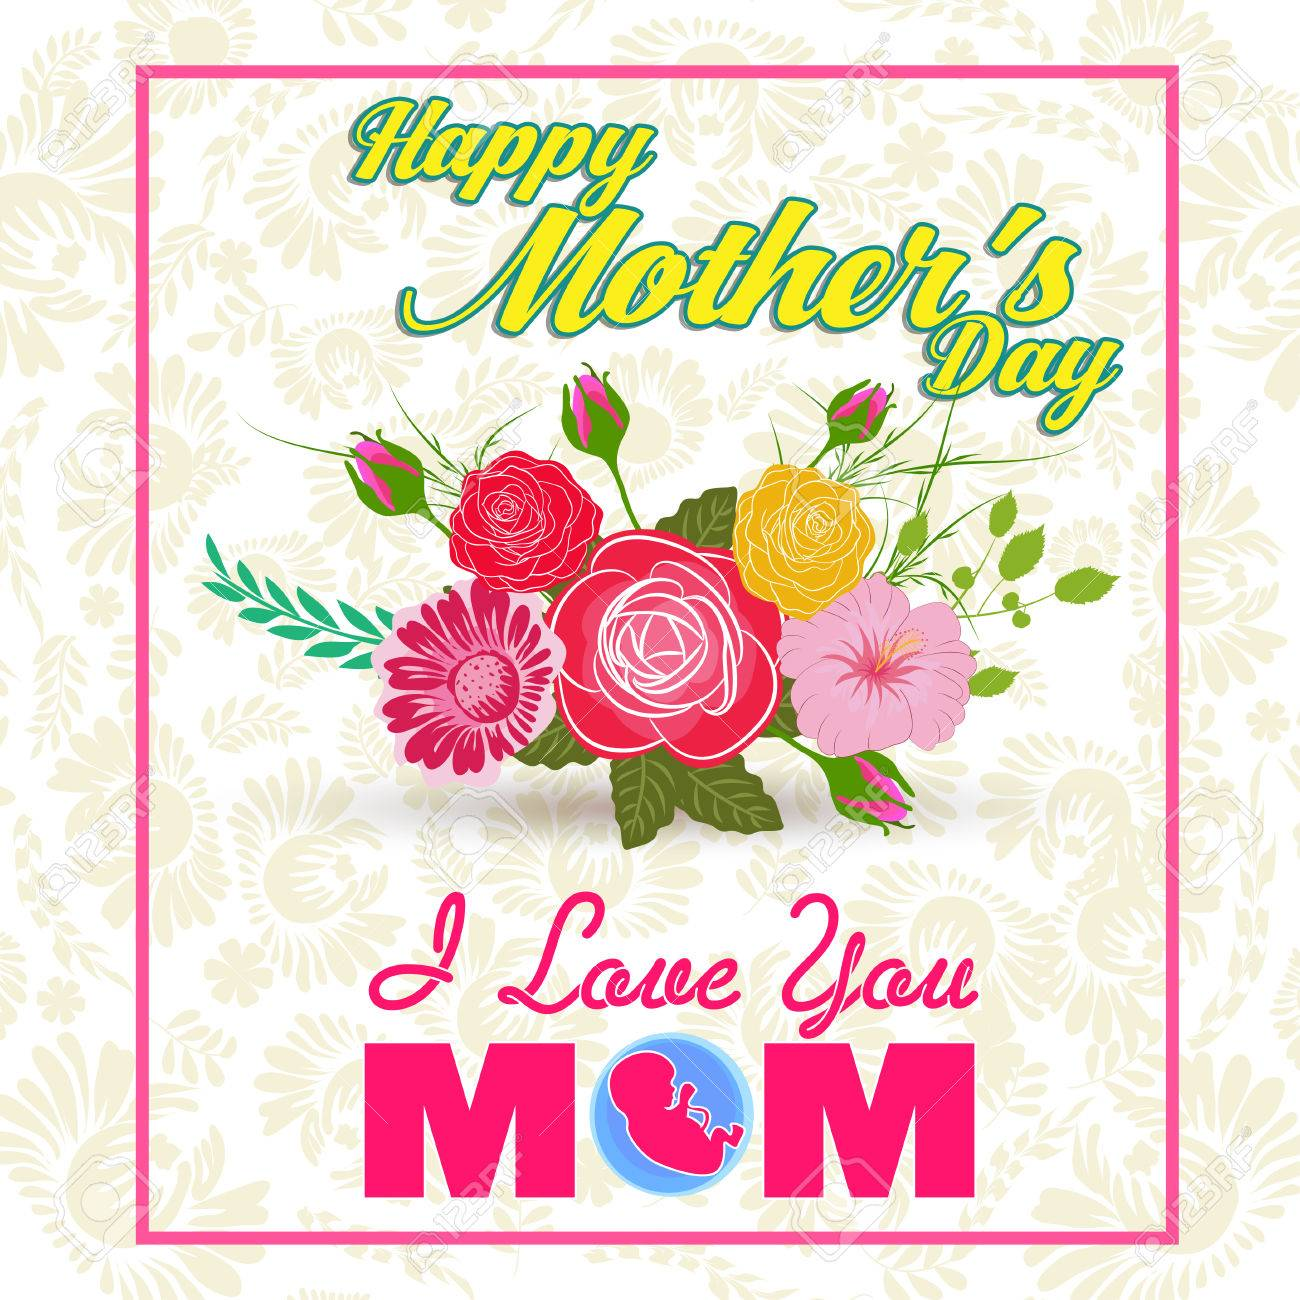 Happy mothers day lettering mothers day greeting card with flowers happy mothers day lettering mothers day greeting card with flowers stock vector 75284430 m4hsunfo